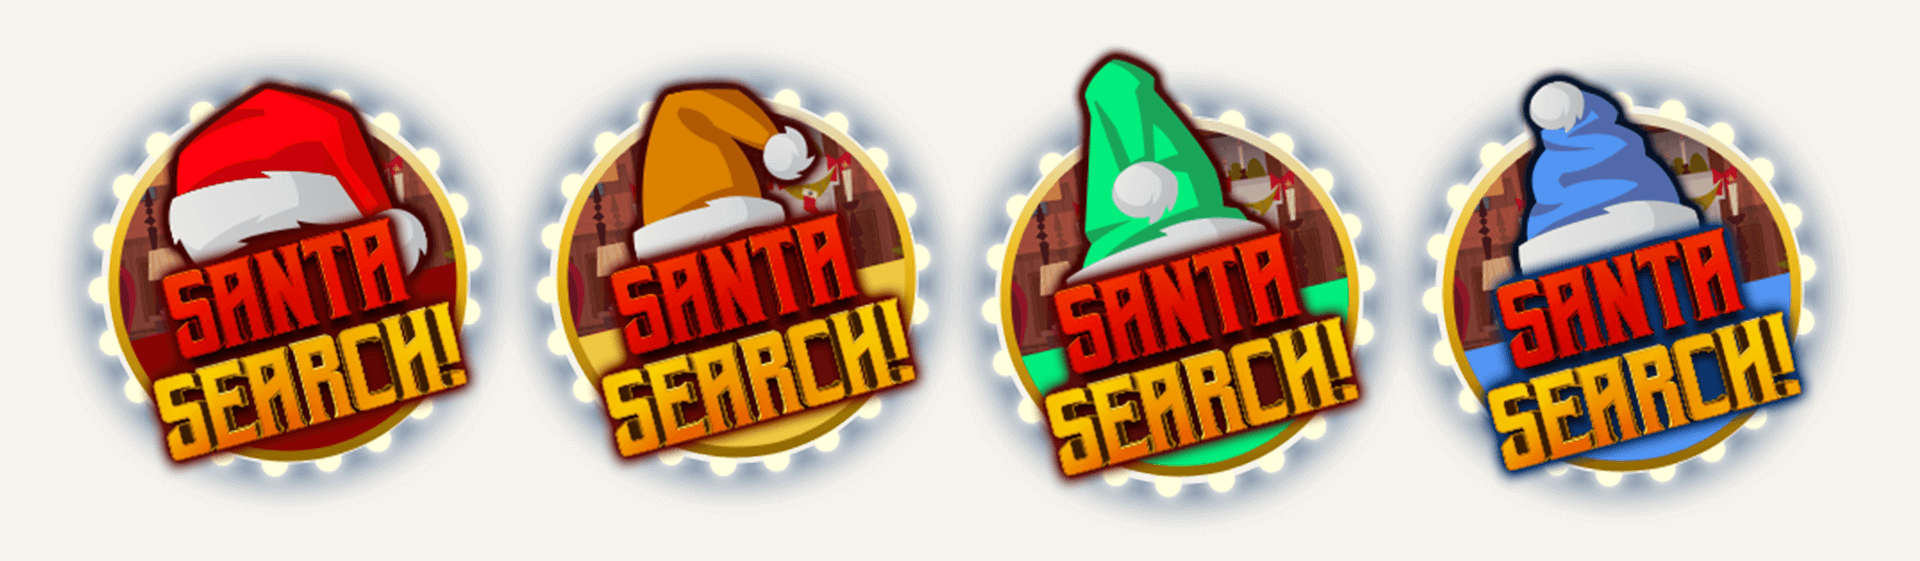 Santa Search - mFortune Christmas promotion 2020 - Santa hat icon